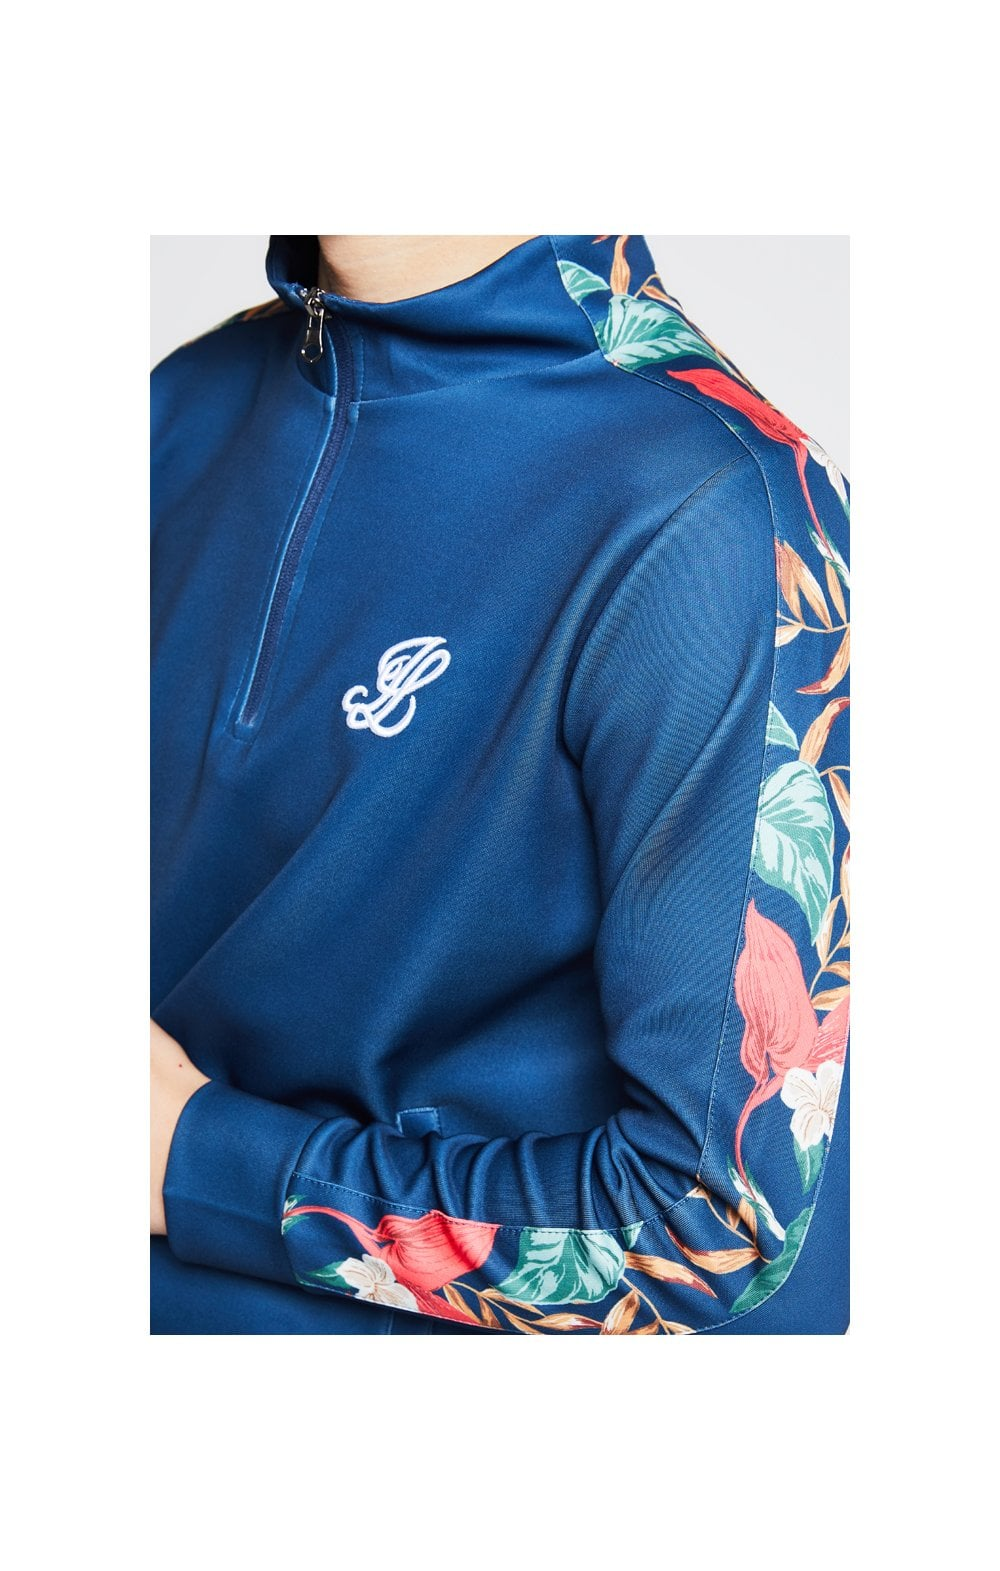 Illusive London Panel Funnel Neck 1/4 Zip Hoodie - Teal & Tropical Leaf (1)